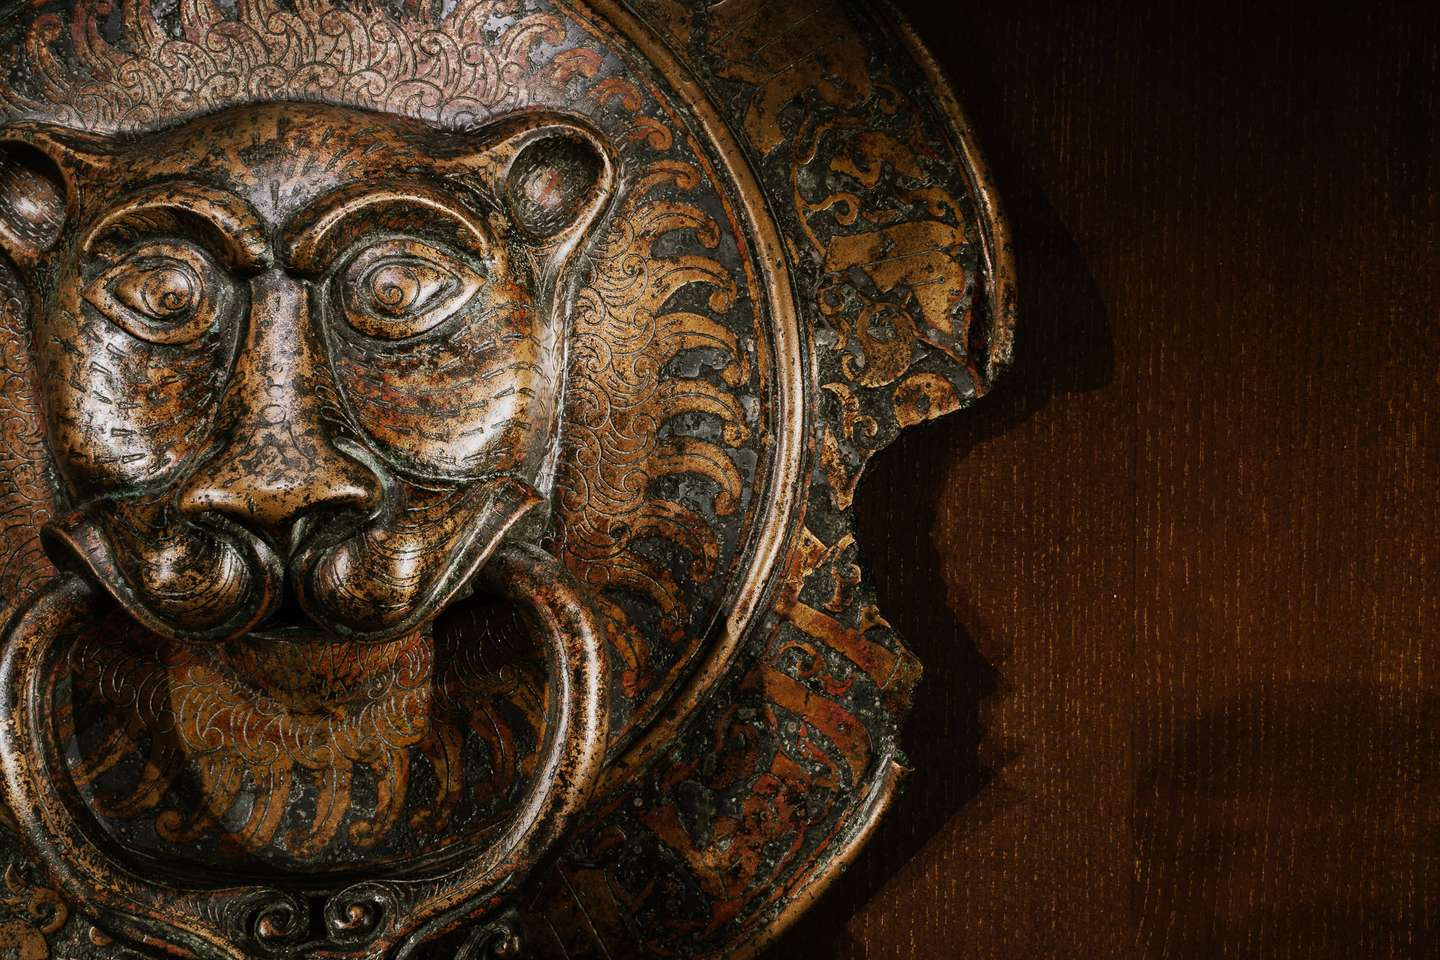 A door knock of bronze, which looks like a lion with a ring and with a rooster in the mouth, Sicily, 11th century.